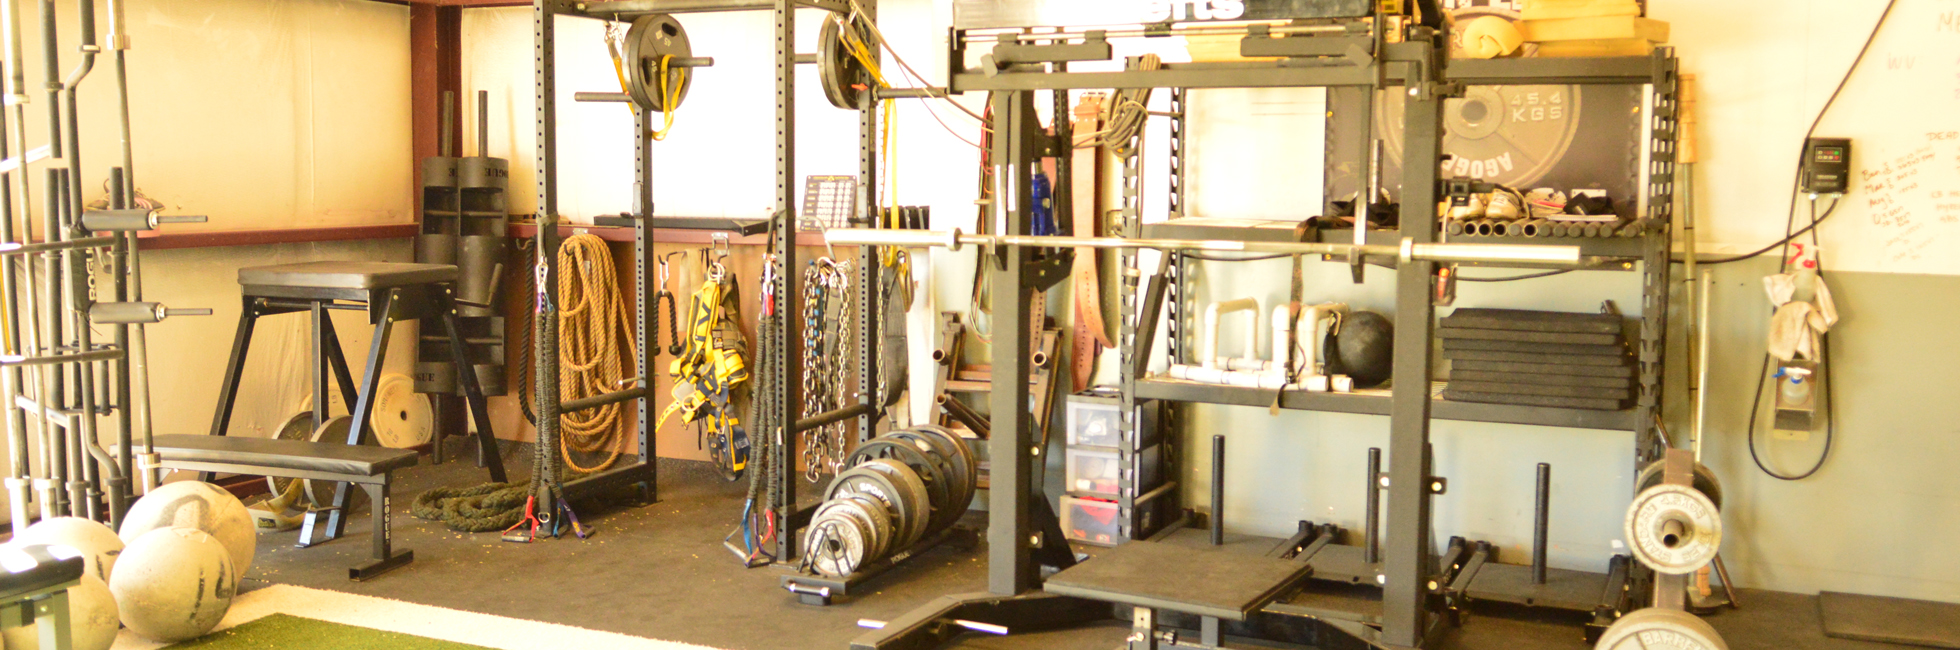 A Gym In Montrose That Can Help With Weight Loss & Dieting